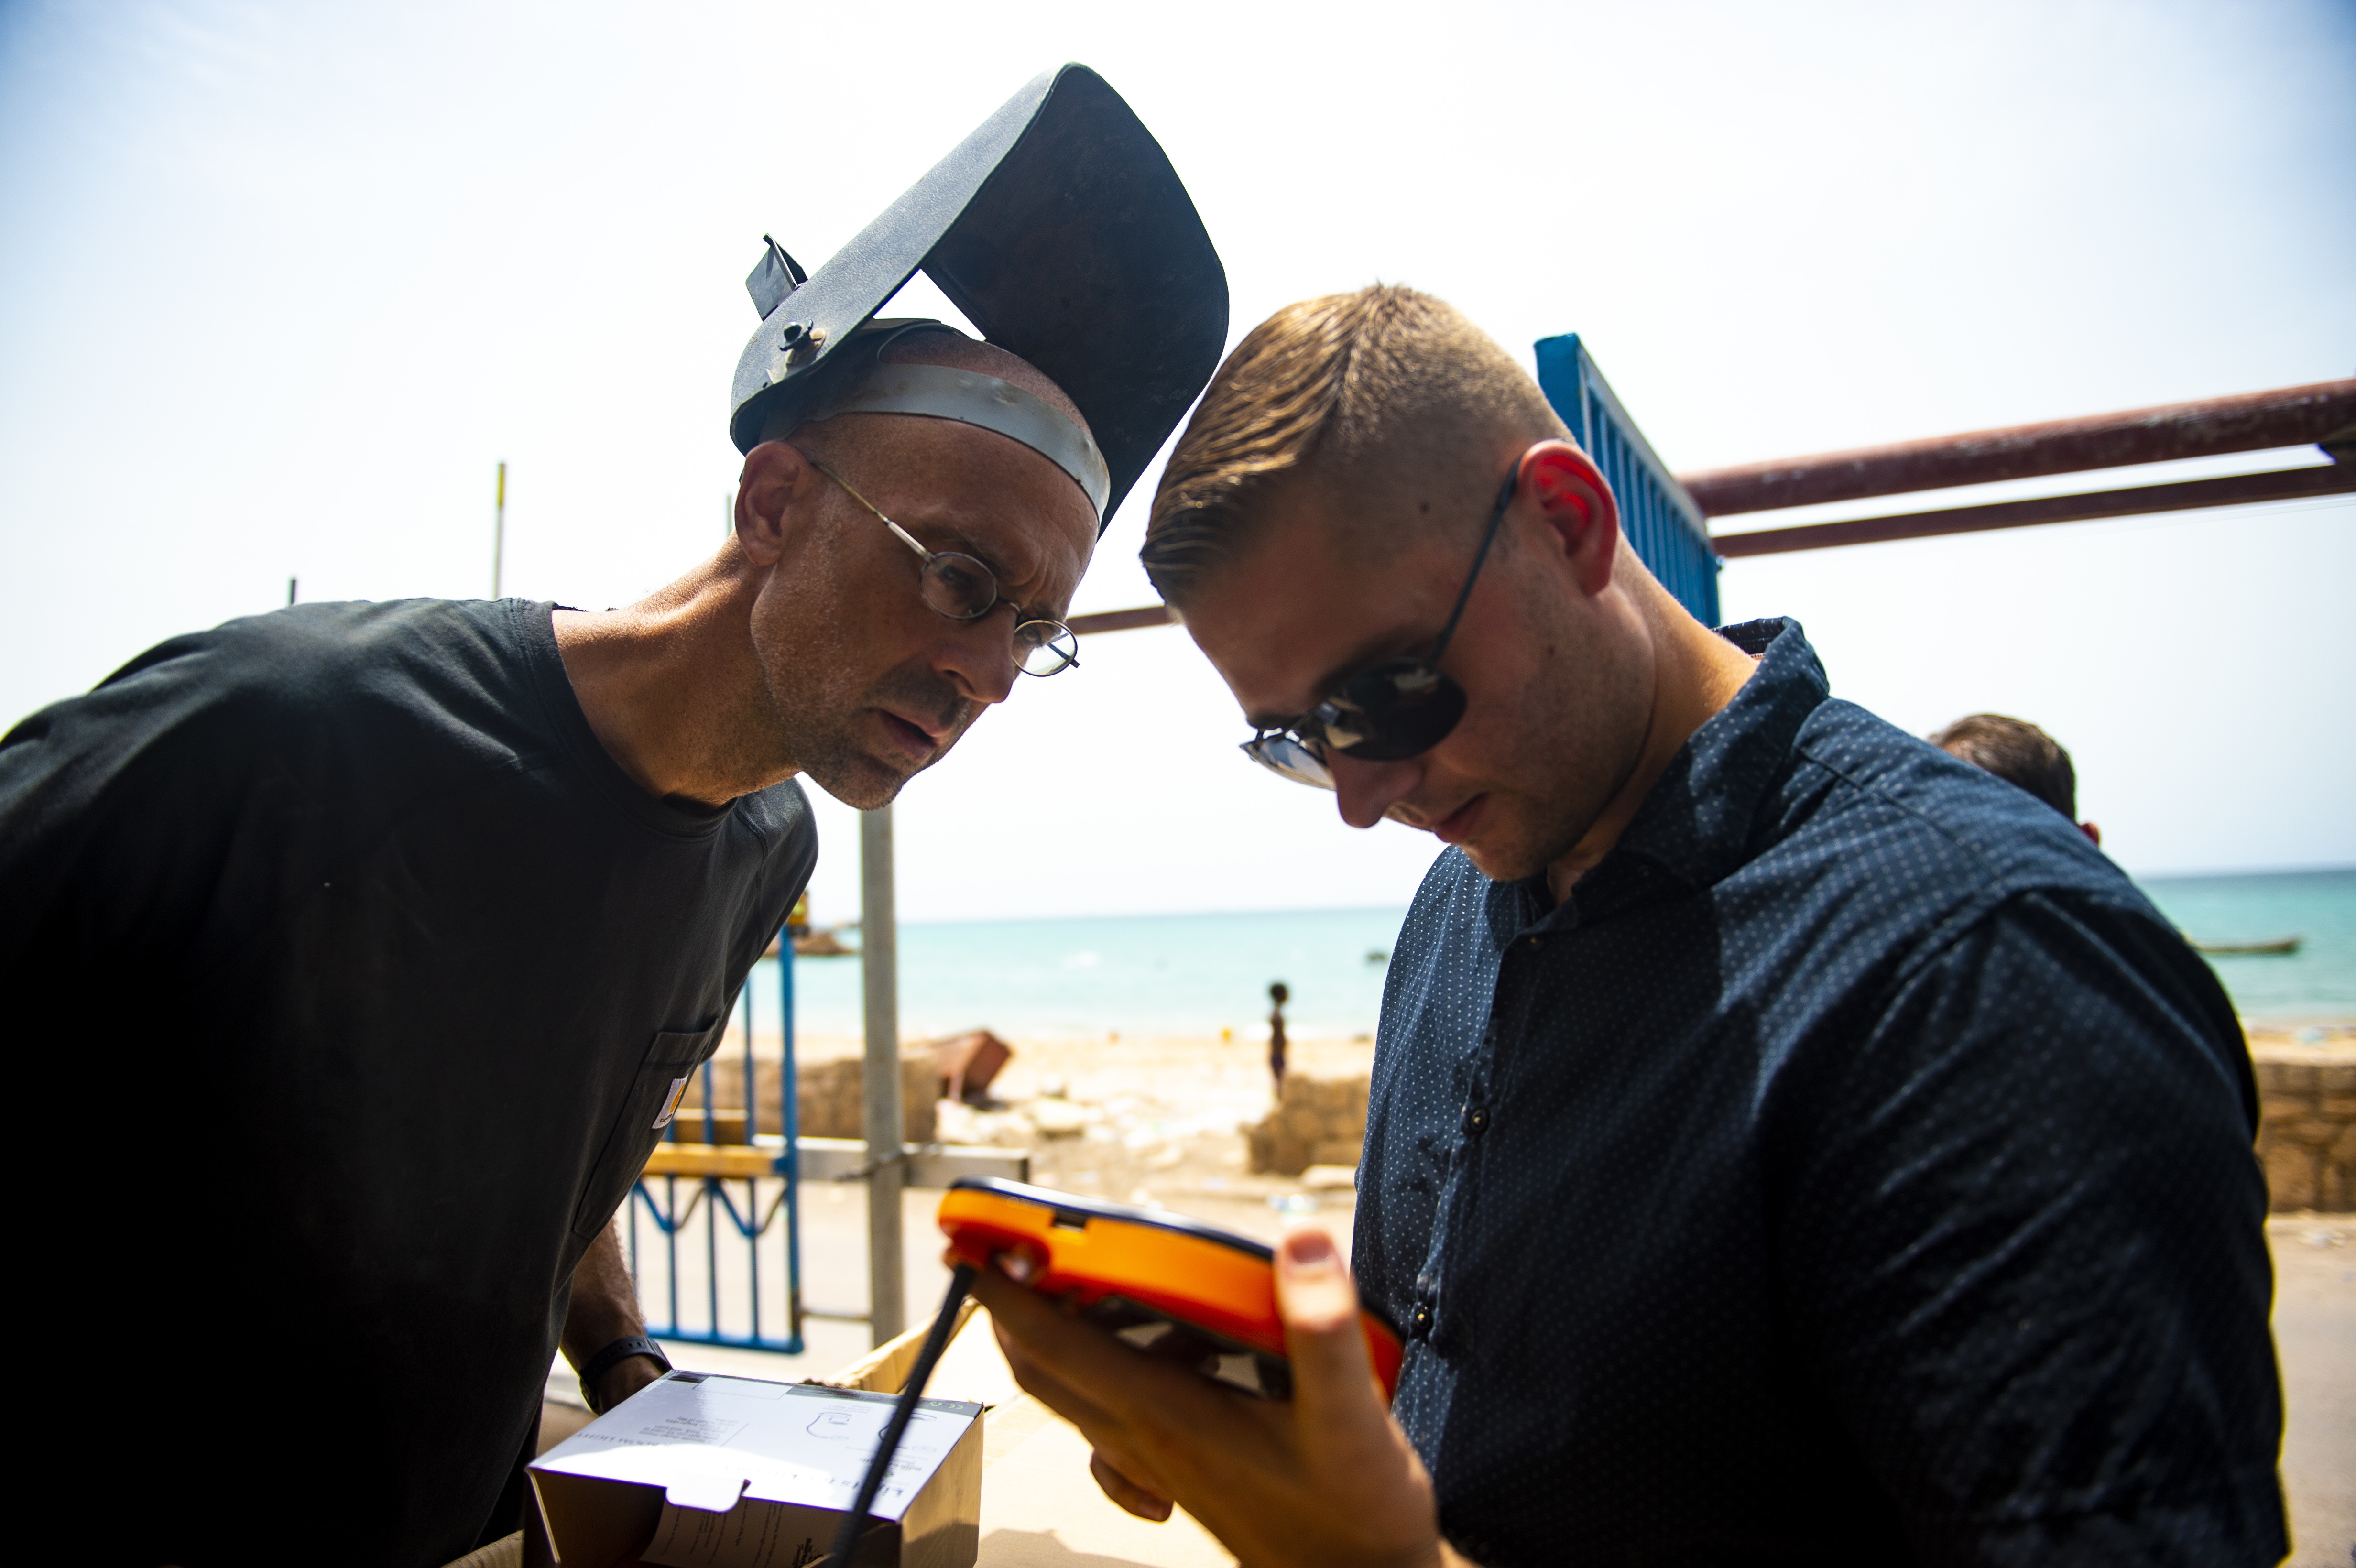 Father Mark Desser, Catholic Priest, Diocese of Djibouti, left, examines a solar powered desk light with Sgt. Kyle Caprio, 407th Civil Affairs, in Obock, Djibouti, August 17, 2018. The 407th Civil Affairs mission is to develop and maintain relationships with communities. Fr. Mark's teaches welding, stonemasonry, electrical work, plumbing, and HVAC systems in Tadjoura and Obock.  (U.S. Air Force photo by Senior Airman Scott Jackson)